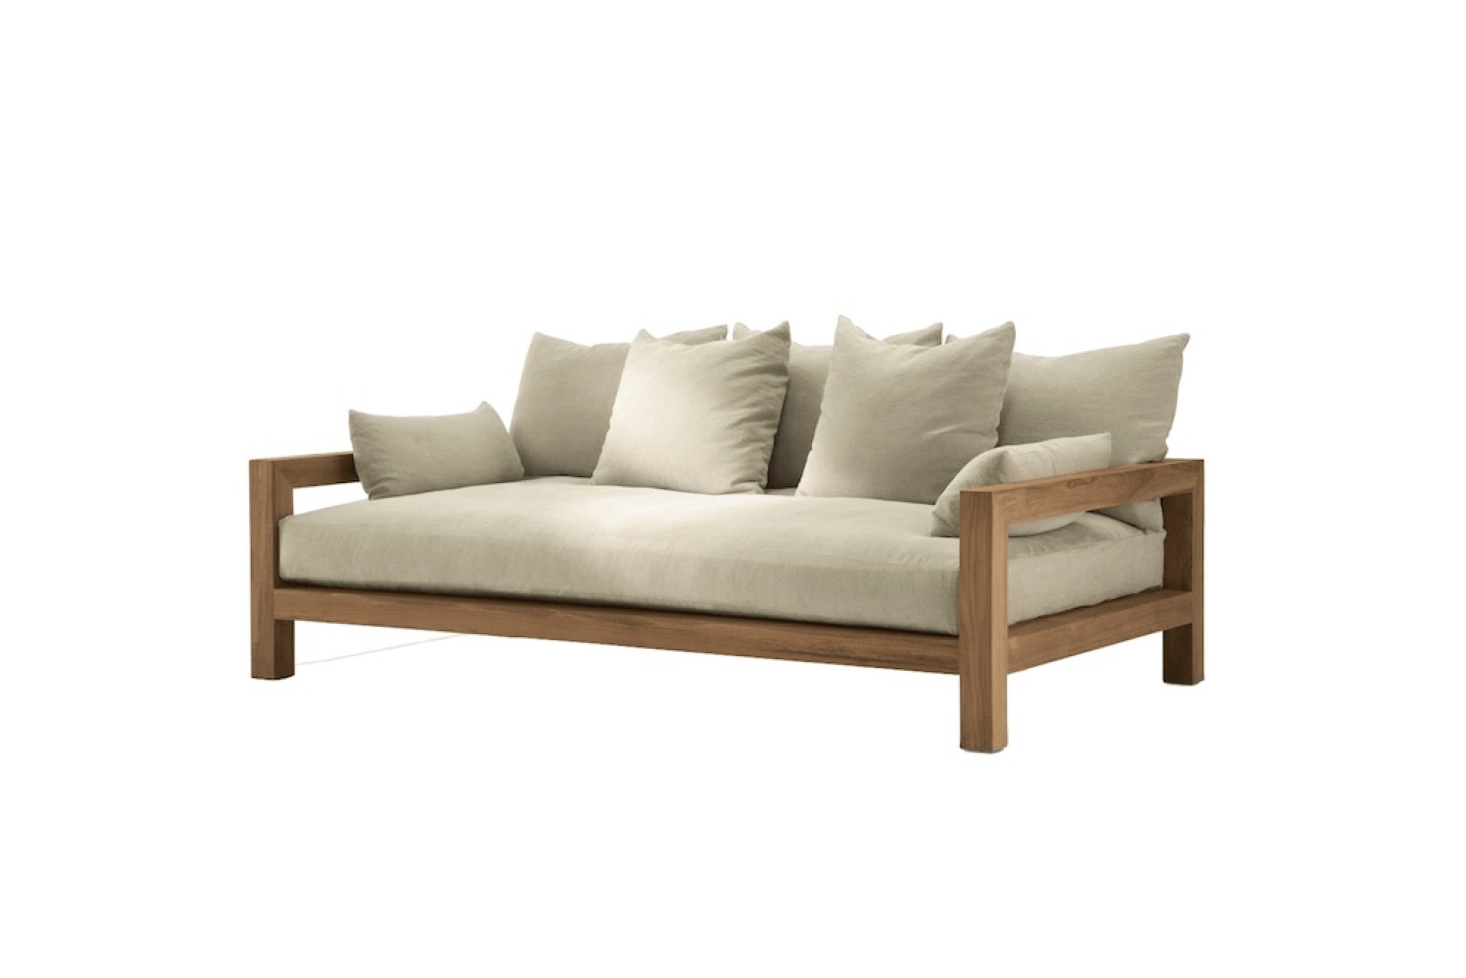 Patio Furniture: 12 Favorite Teak Sofas for Outdoor Living Spaces